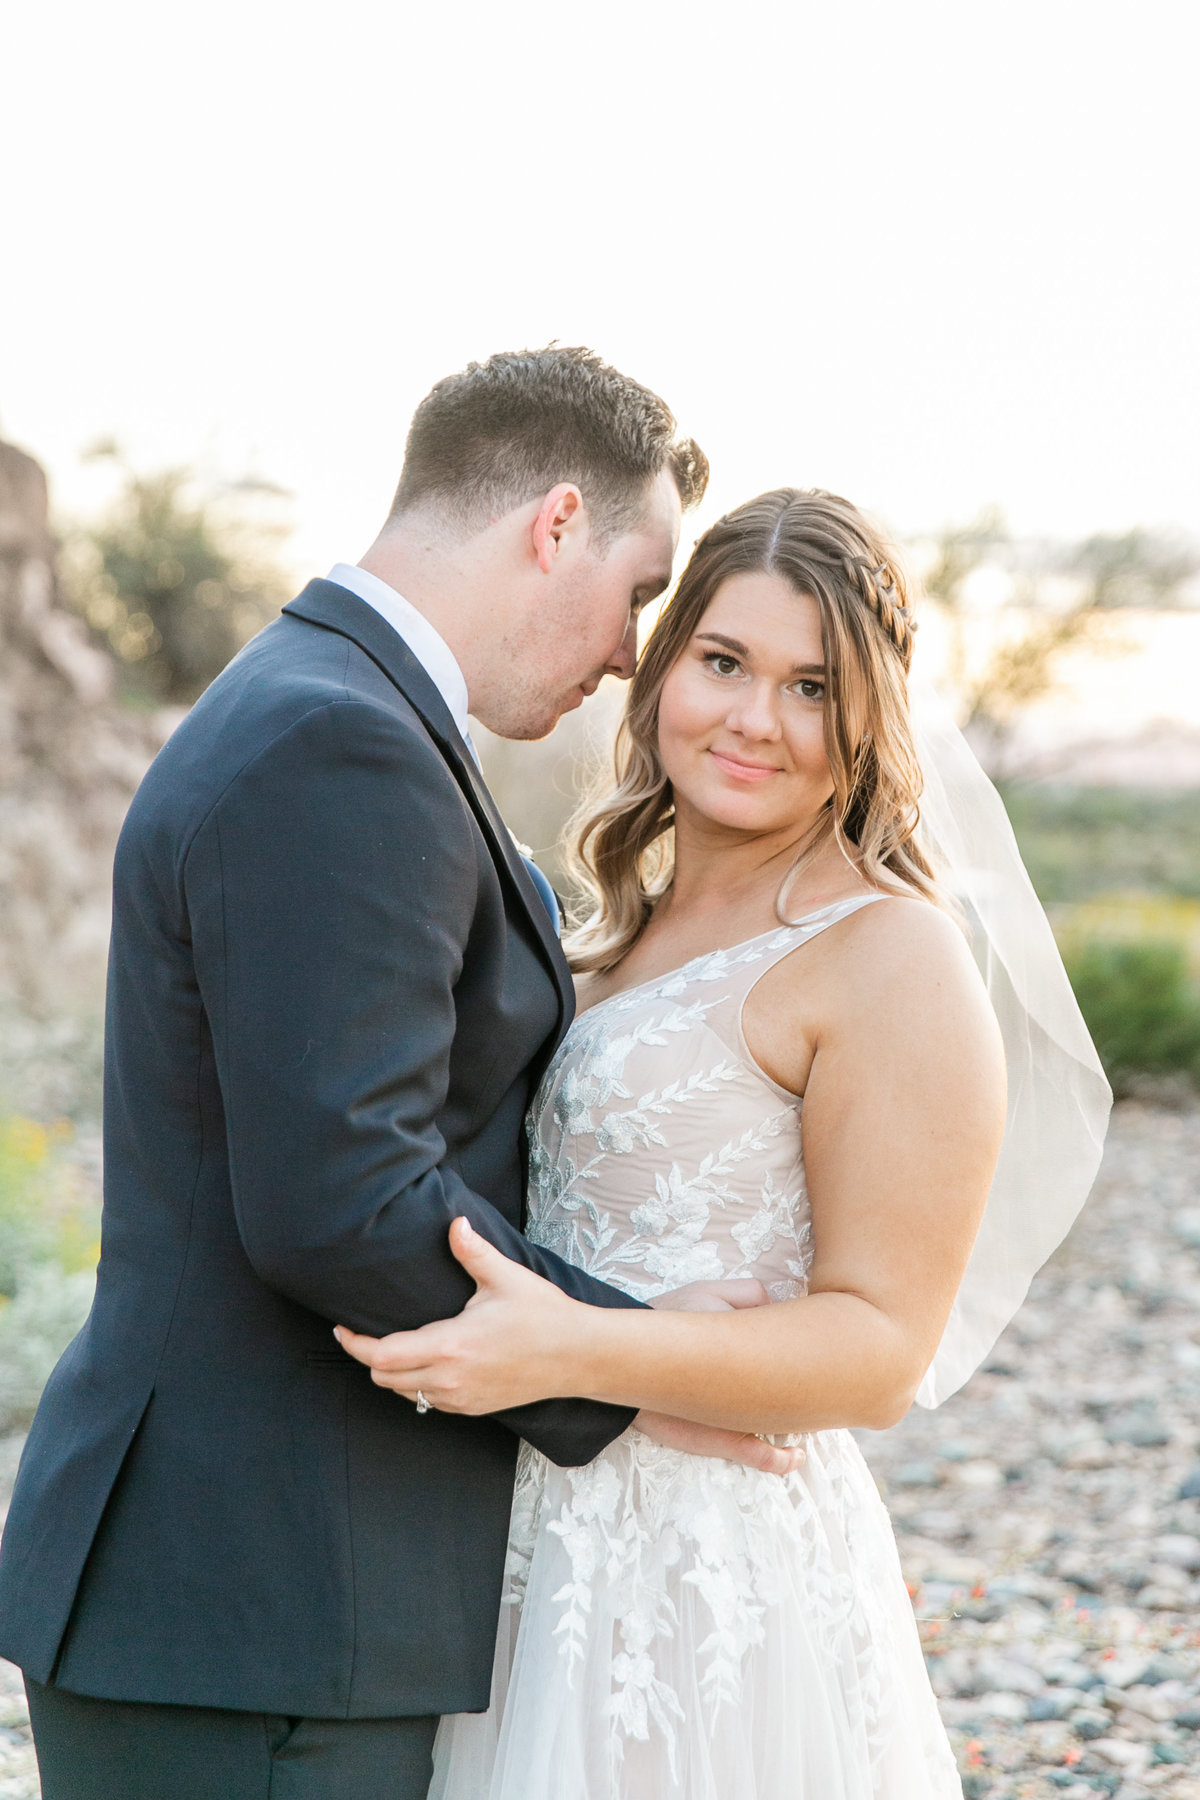 Karlie Colleen Photography - Arizona Backyard wedding - Brittney & Josh-235